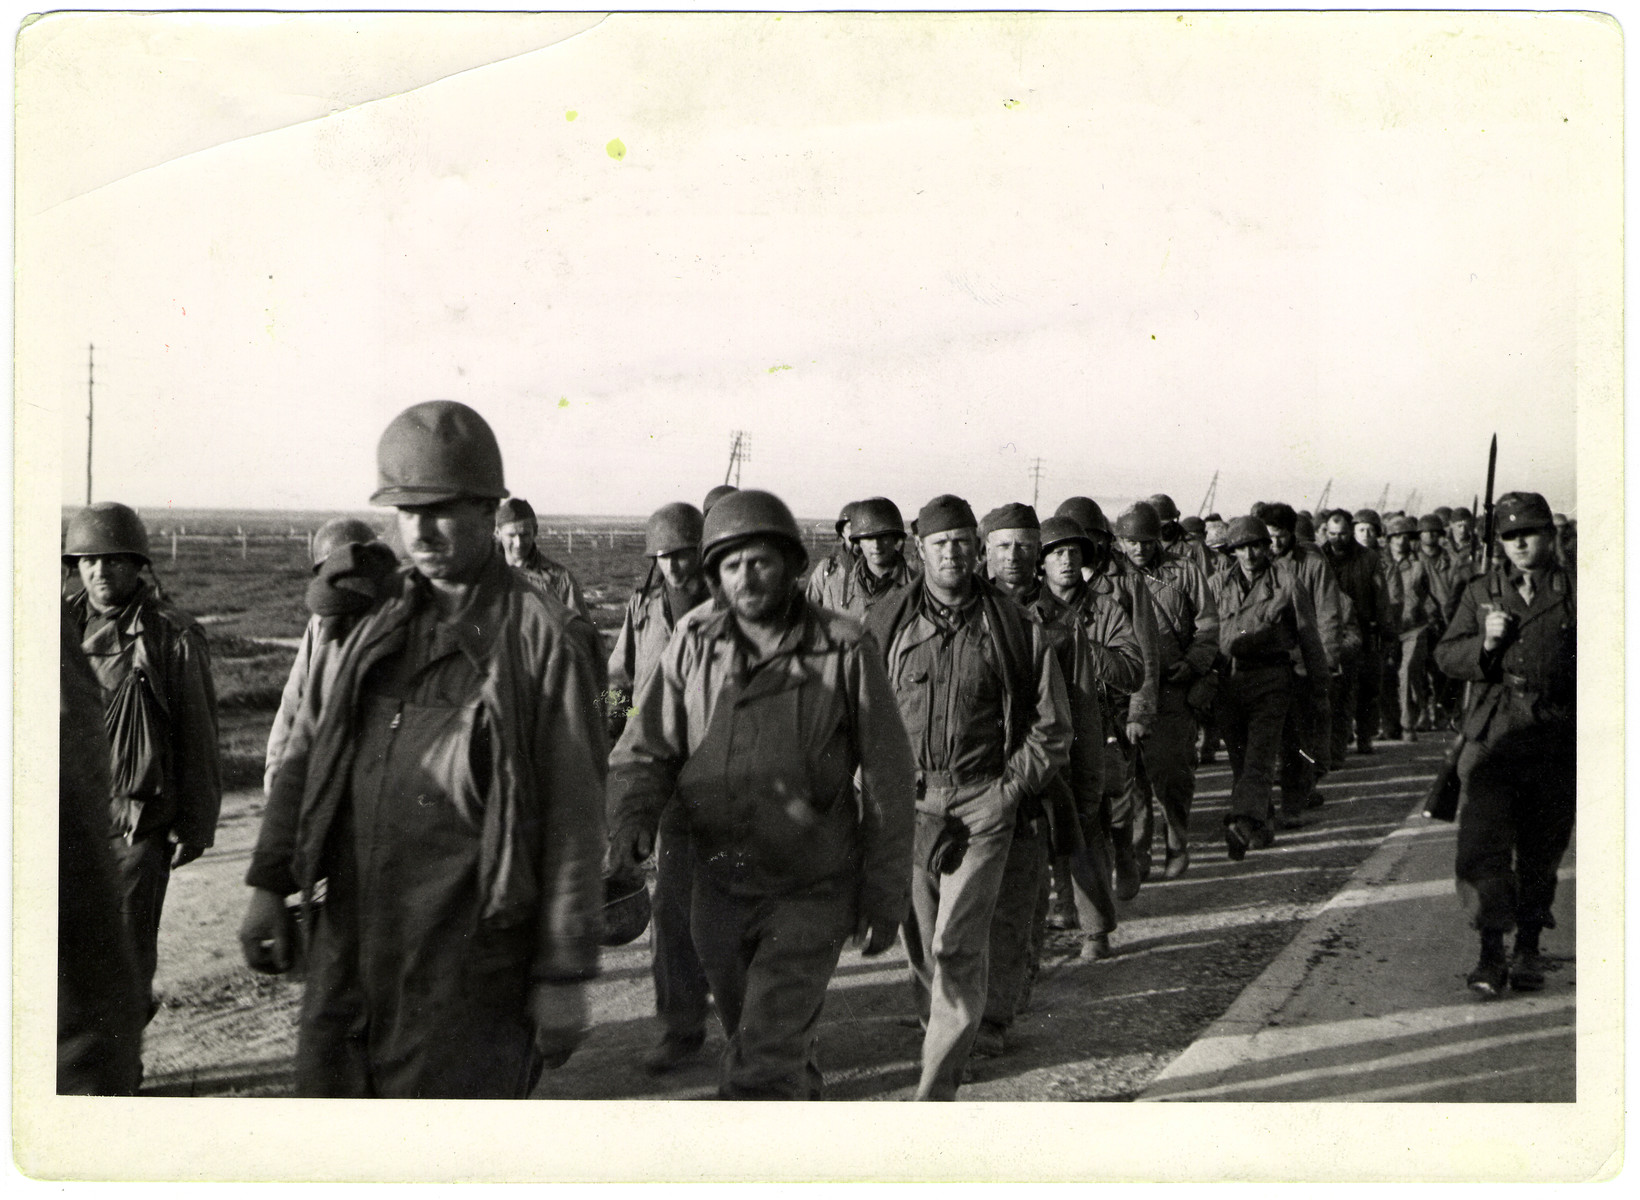 A column of American prisoners march along a road after having been captured by German soldiers.   This photograph was found by the donor, a former Captain in the U.S. Army, on the floor of the Propaganda Ministry in Berlin in August 1945.